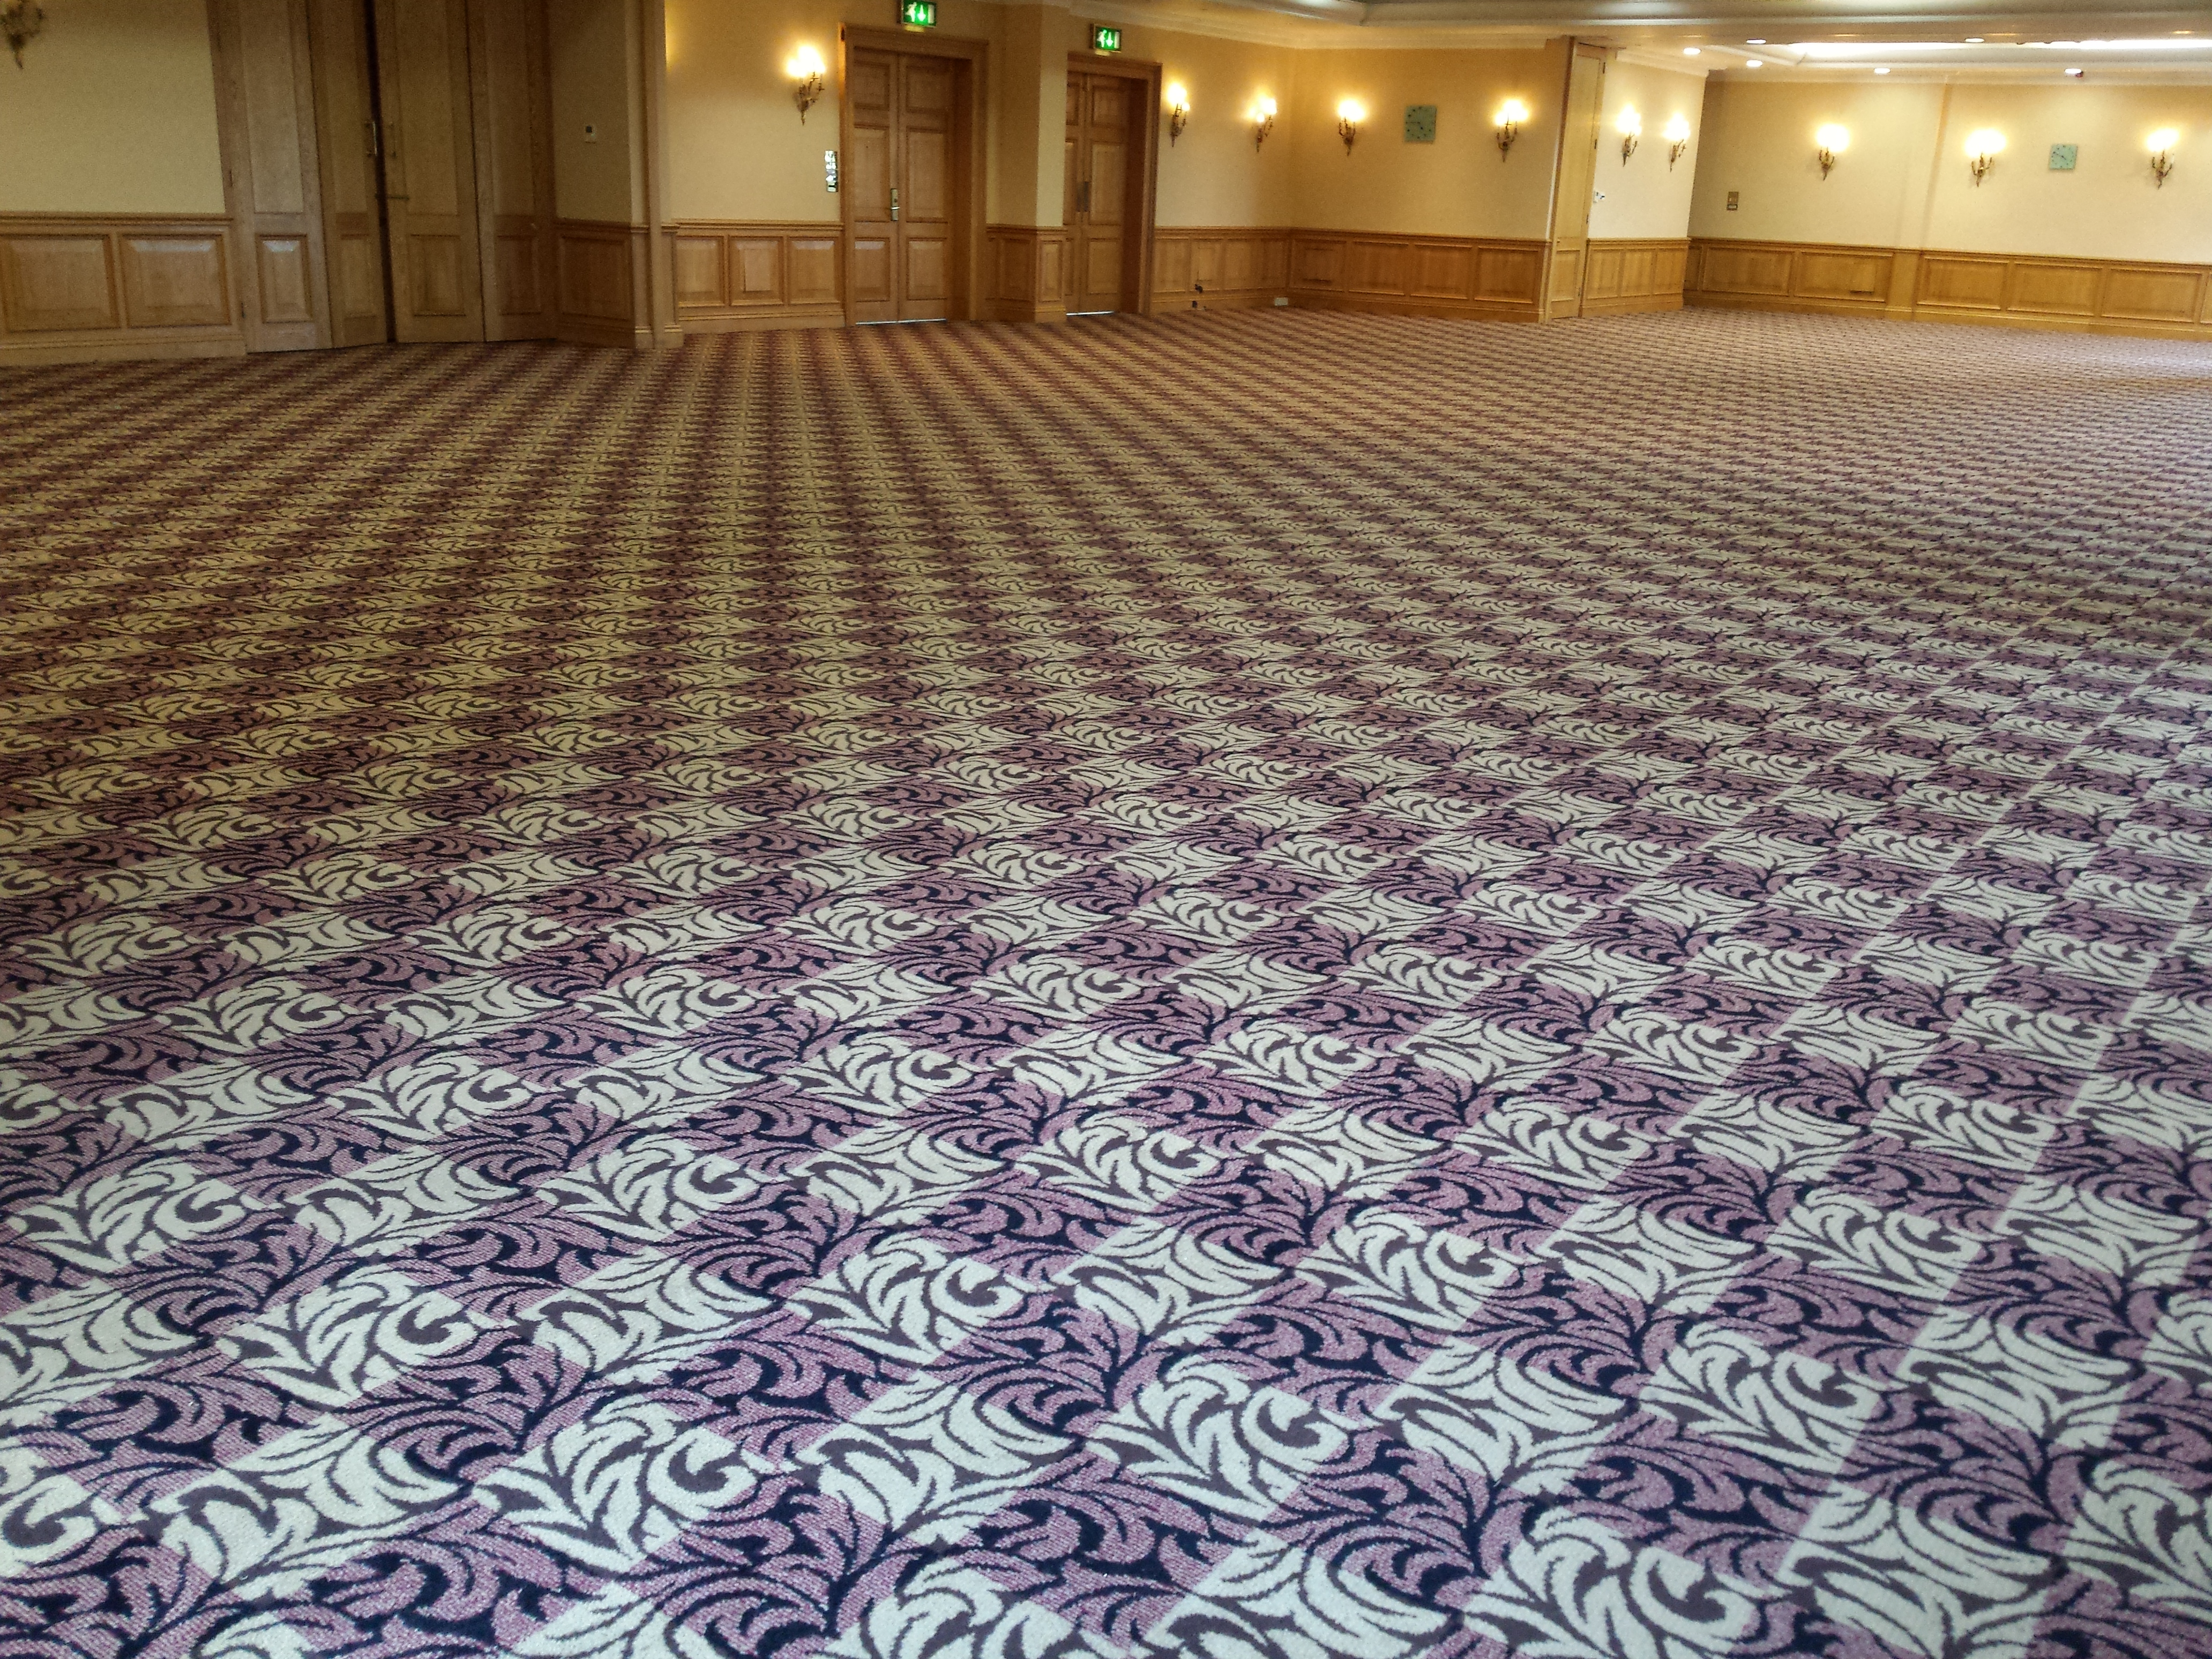 Hotel Carpet Cleaning Oxfordshire Oxfordcarpetcleaners Co Uk